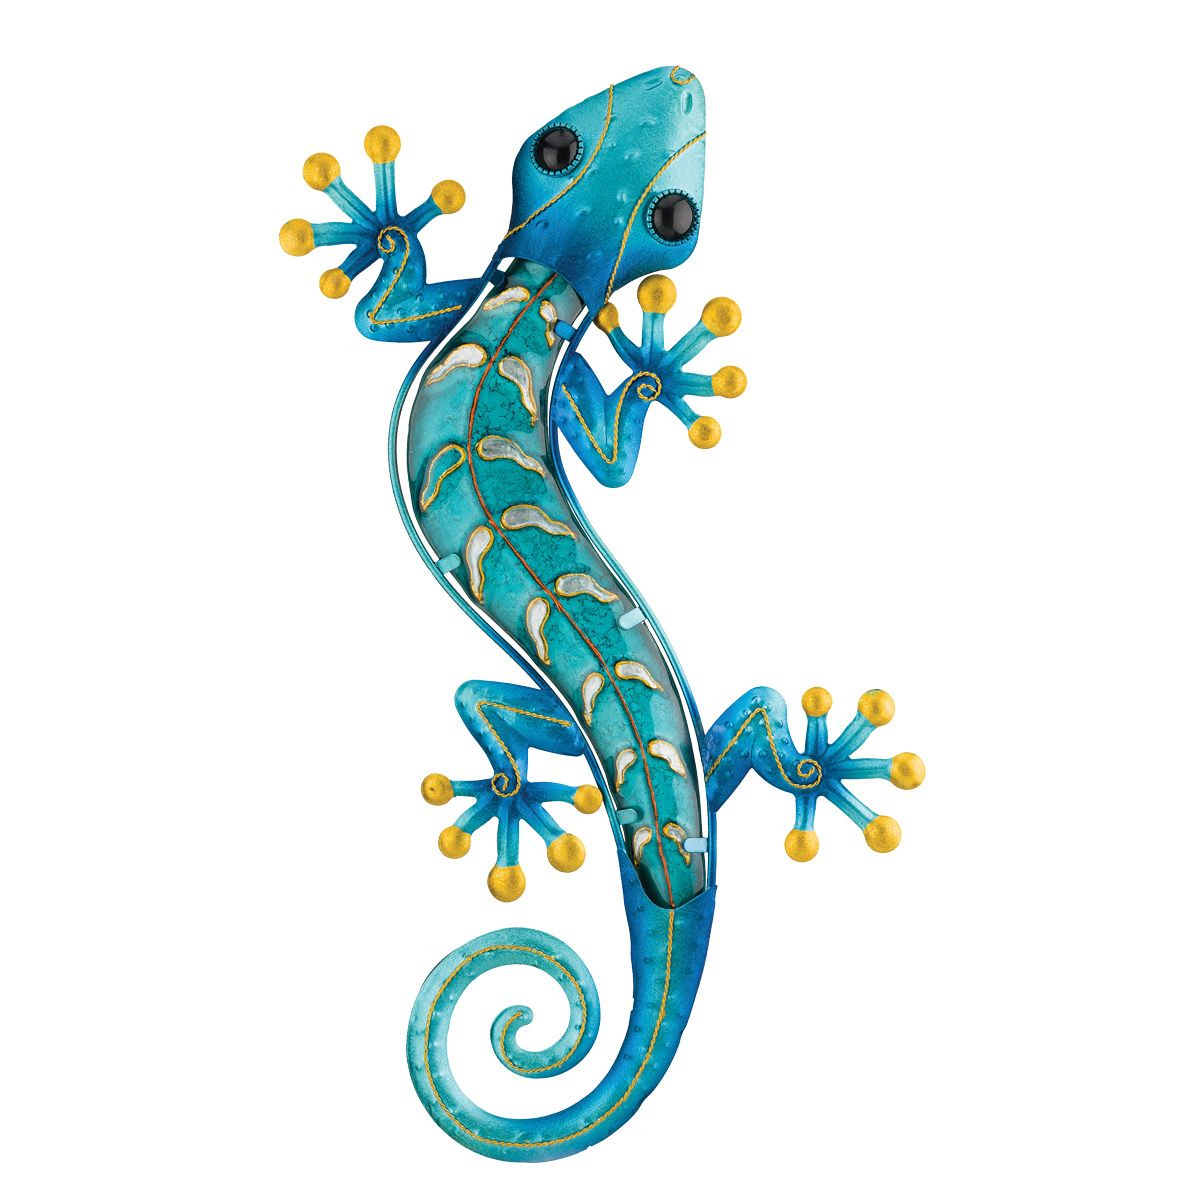 Gecko Wall Decor With Regard To Fashionable Rustic Metal Wall Art: Metal Gecko Wall Art – Blue (View 10 of 20)